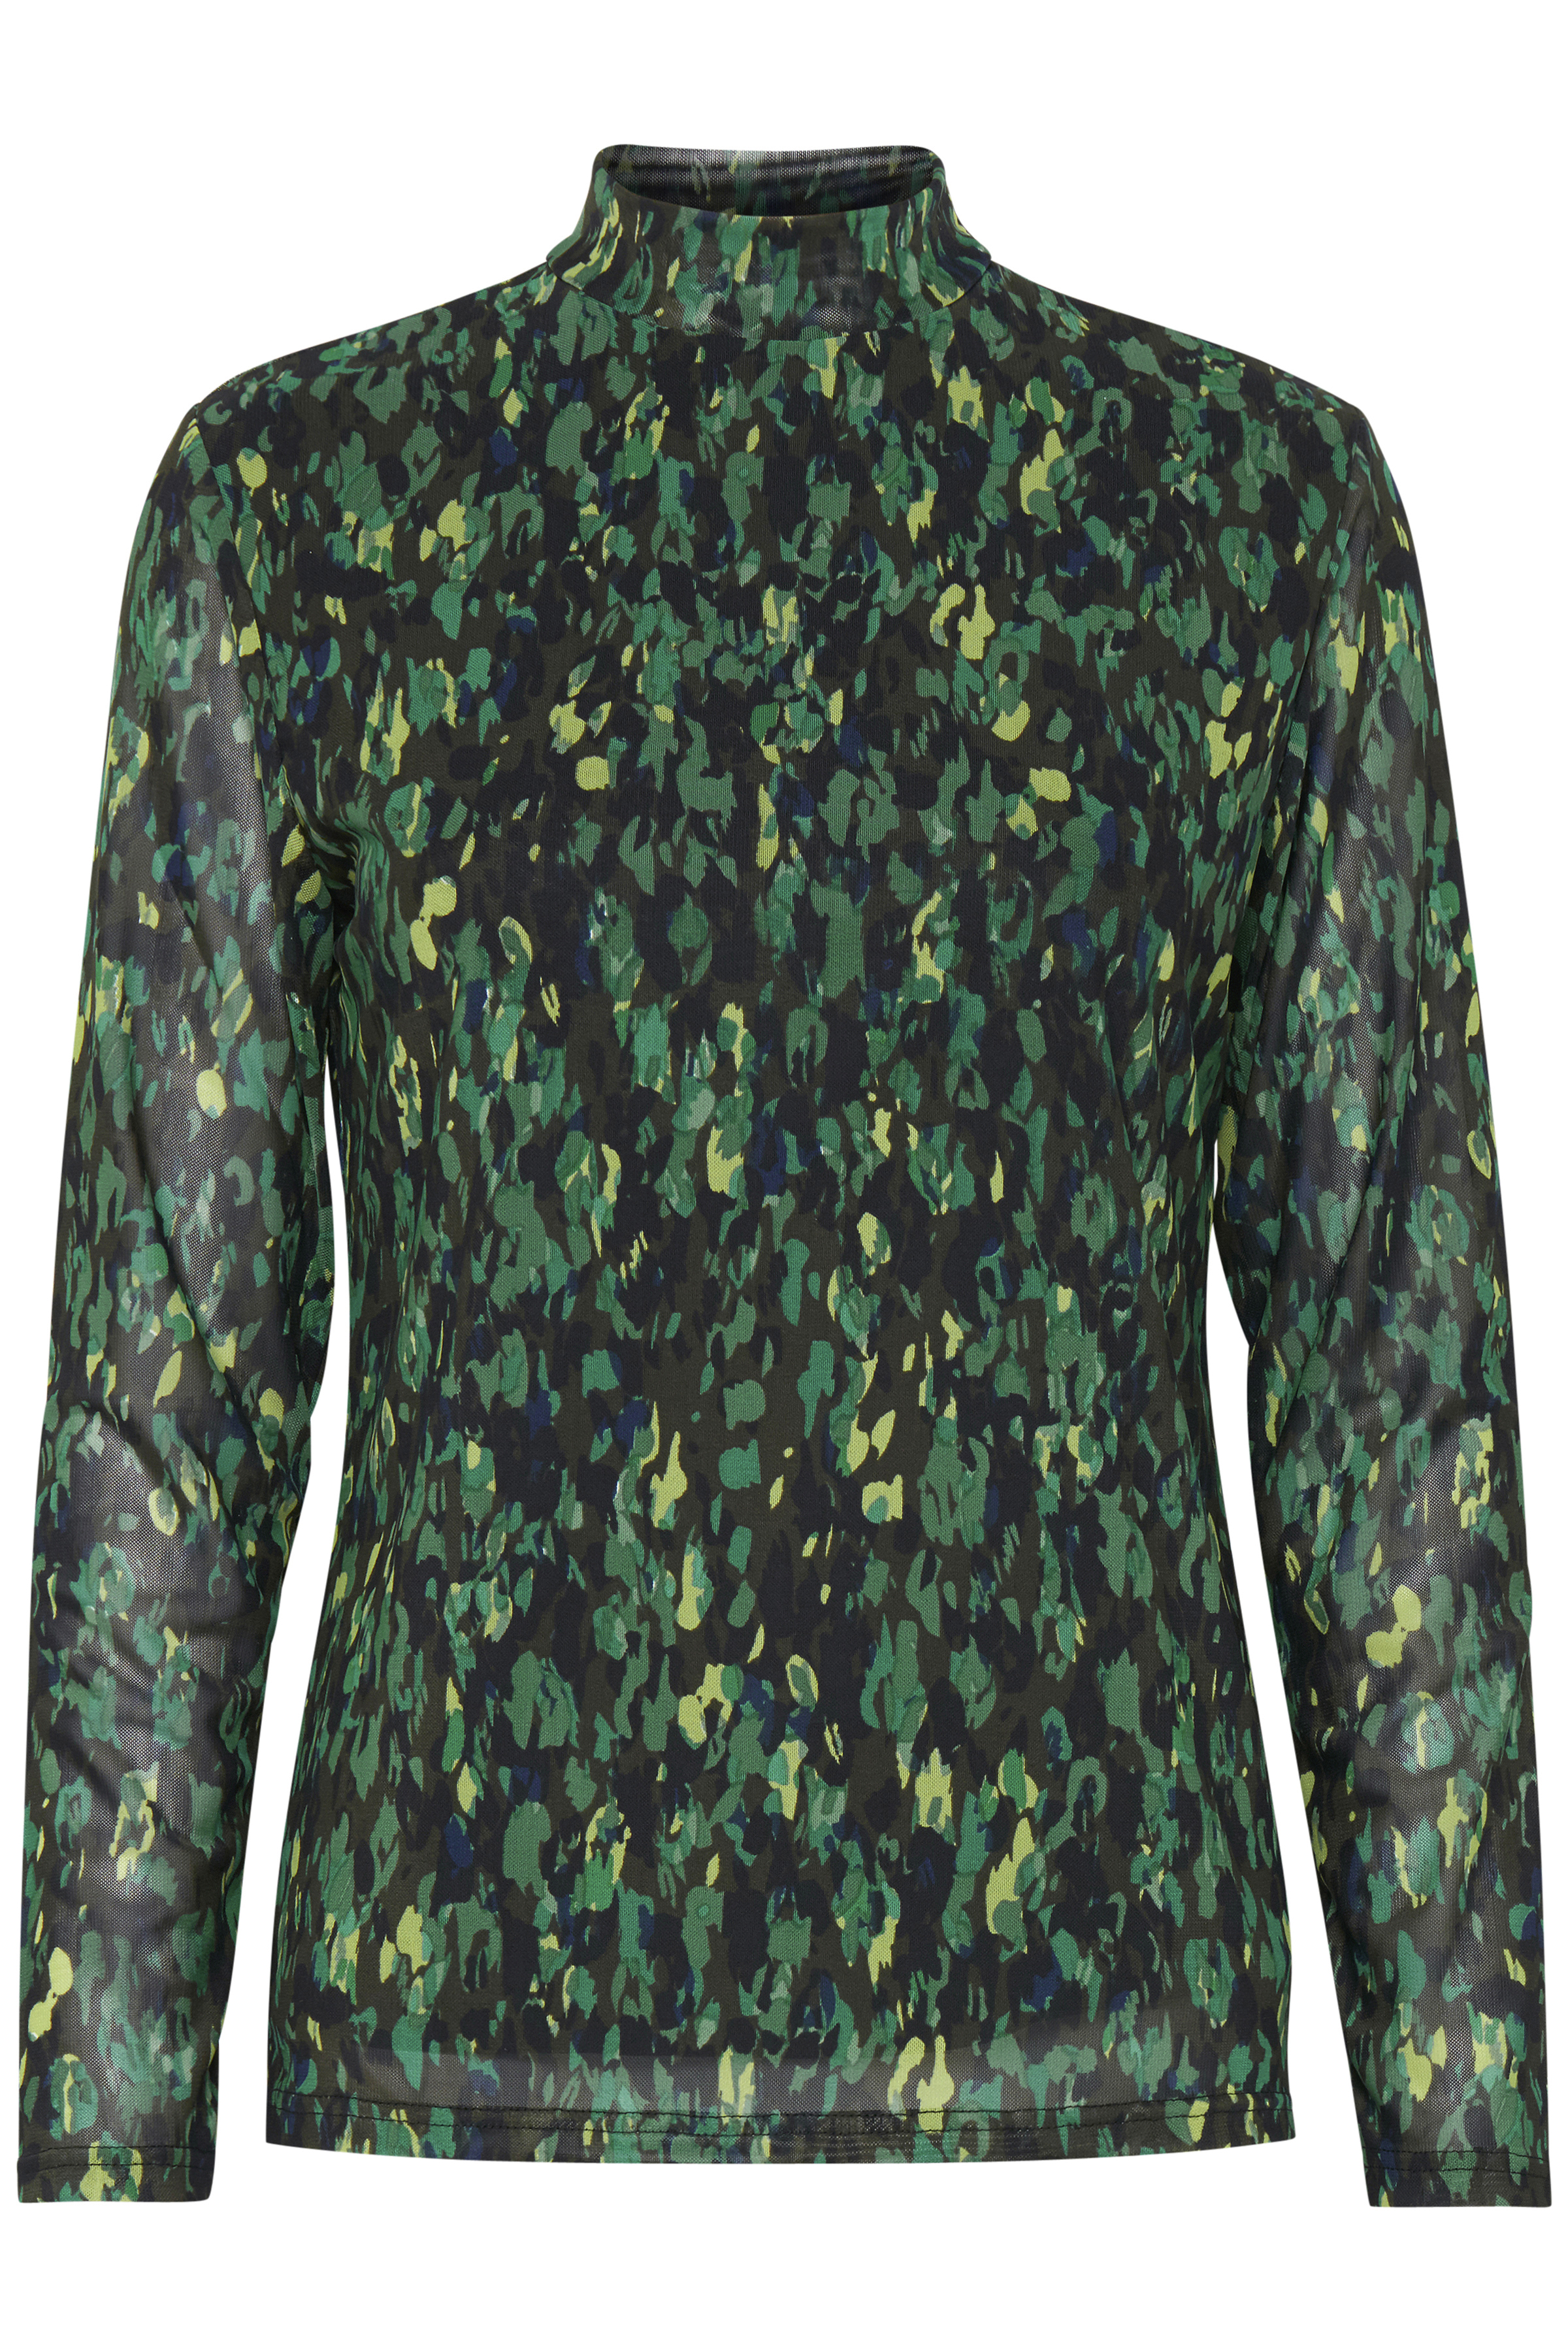 Majestic Green Combi 1 Bluse fra b.young – Køb Majestic Green Combi 1 Bluse fra str. XS-XXL her